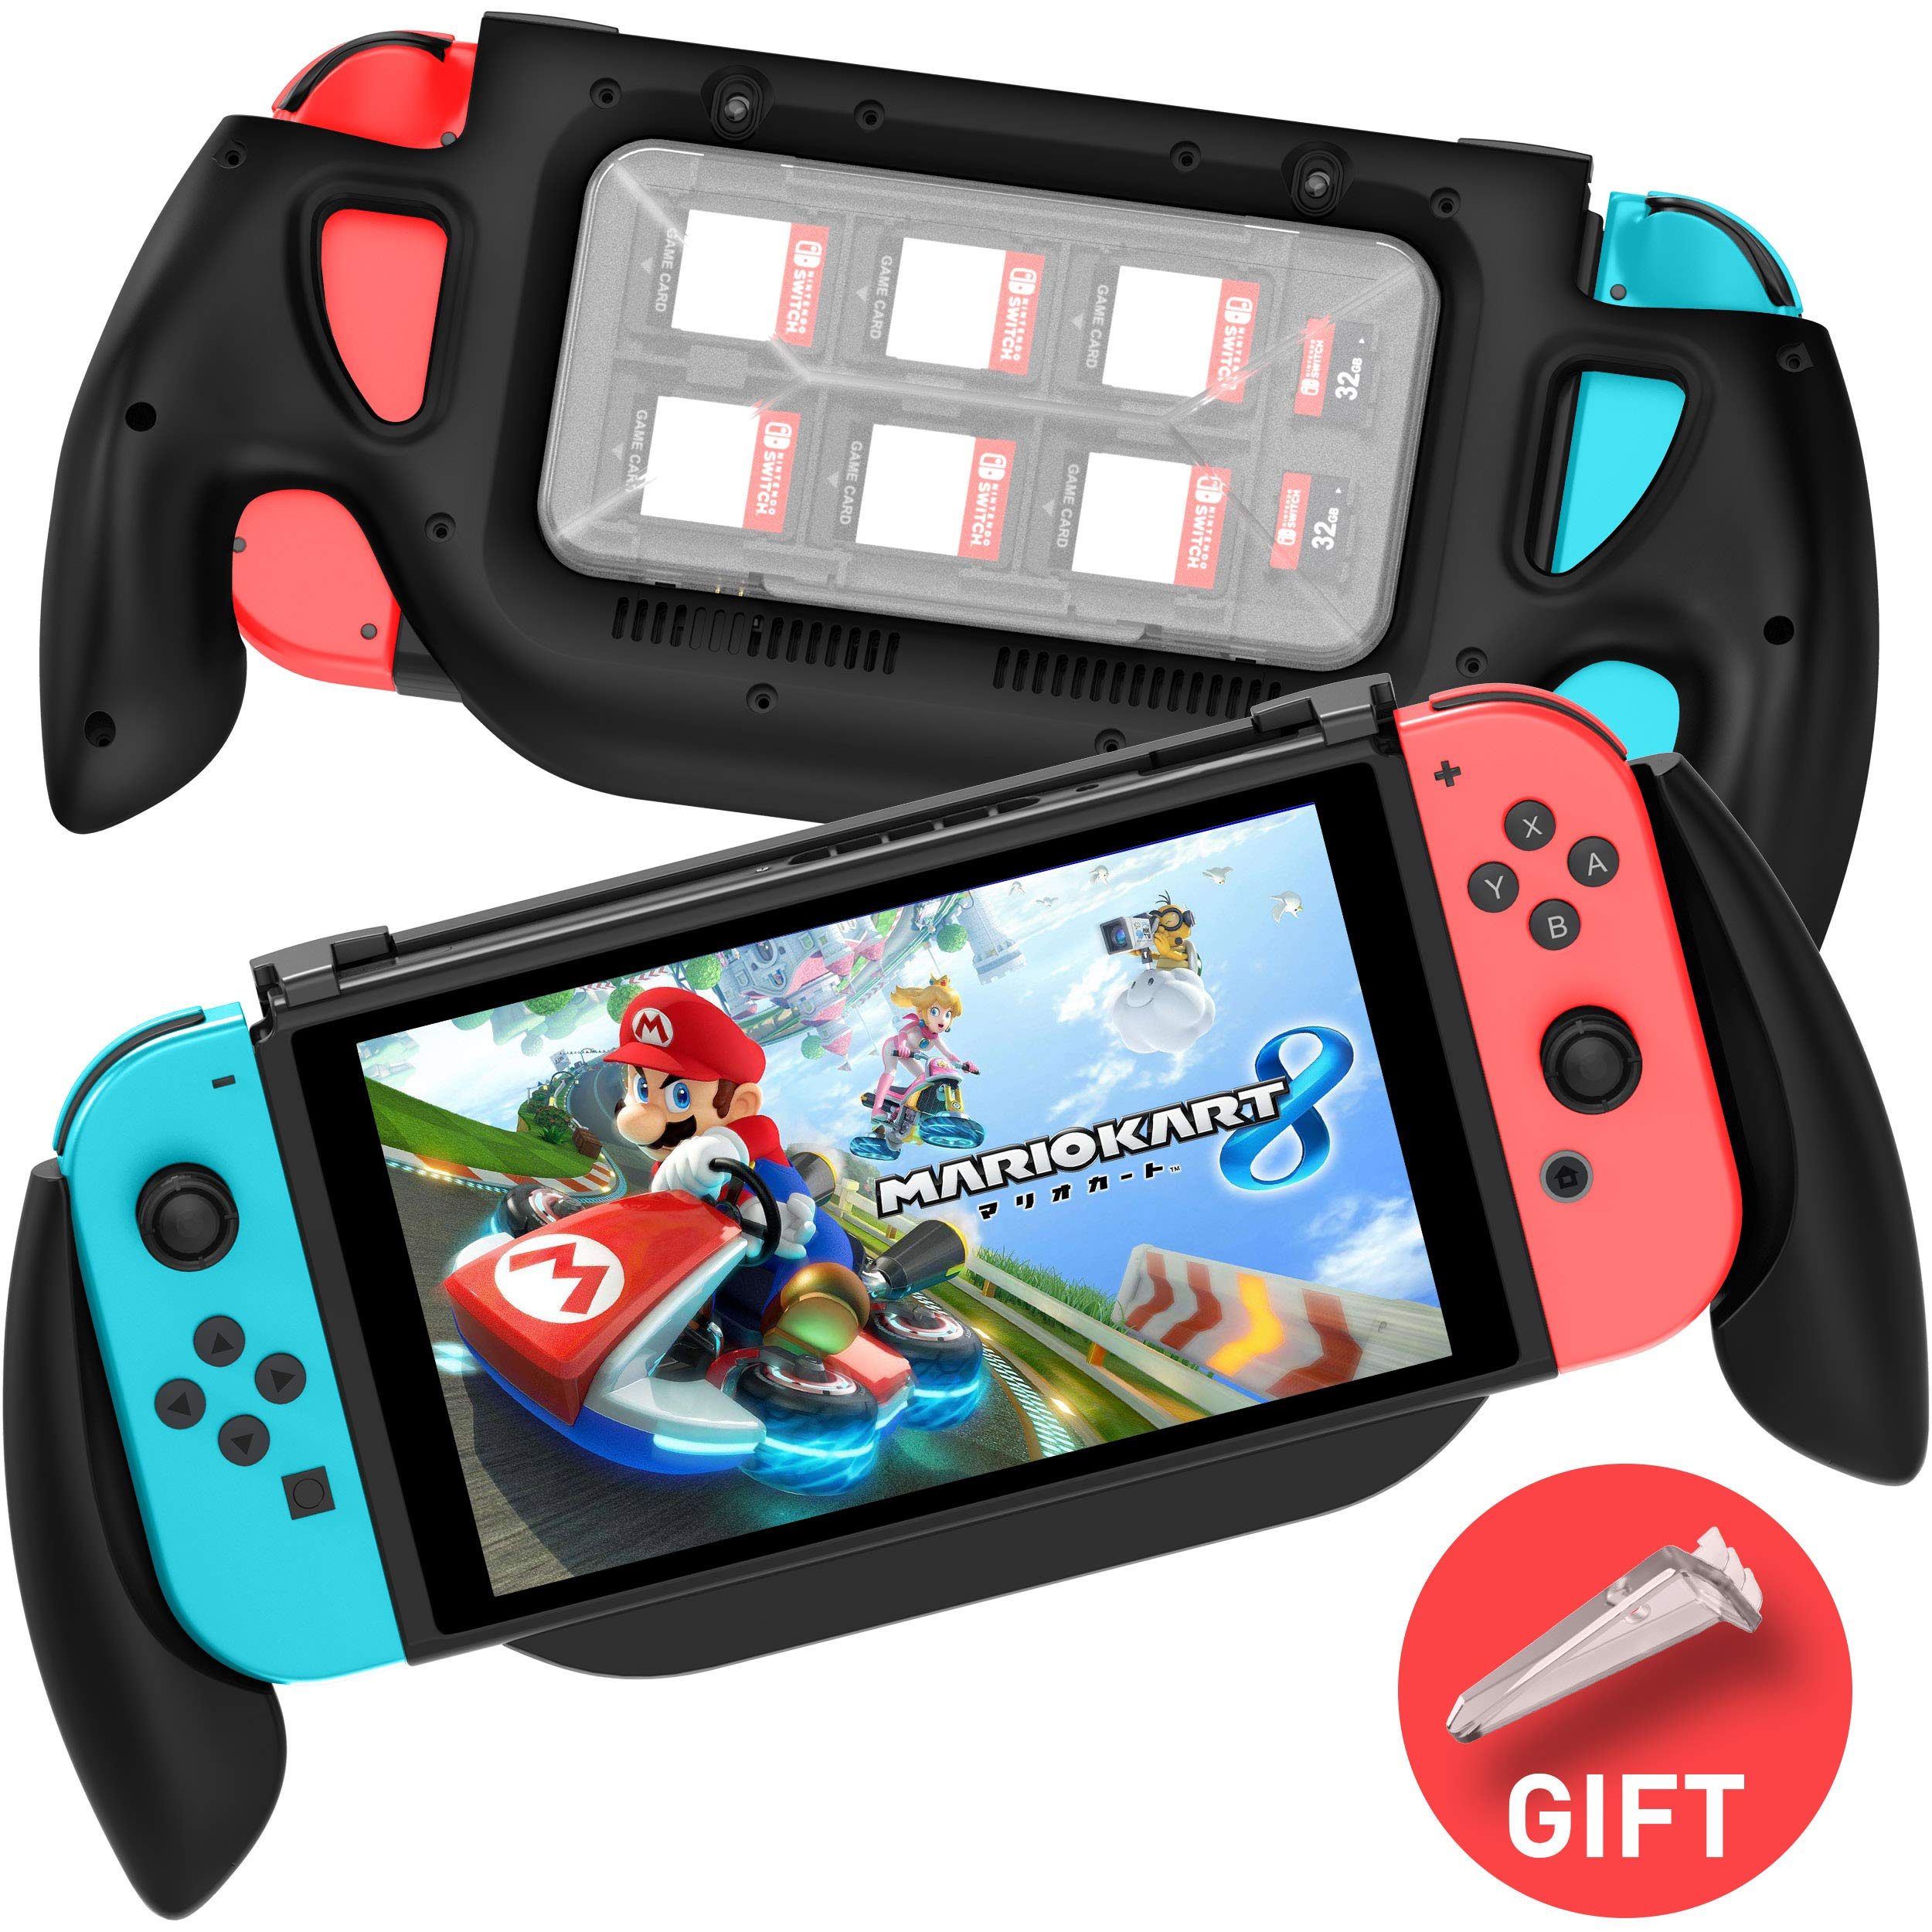 MEQI Gaming Grip Case for Nintendo Switch, Comfortable & Ergonomic Switch Charging Grip with Game Storage Case, Fast Charge Compatible 5V 2A AC Adapter with Type-C Cable for Switch Joy-con Controller by MEQI